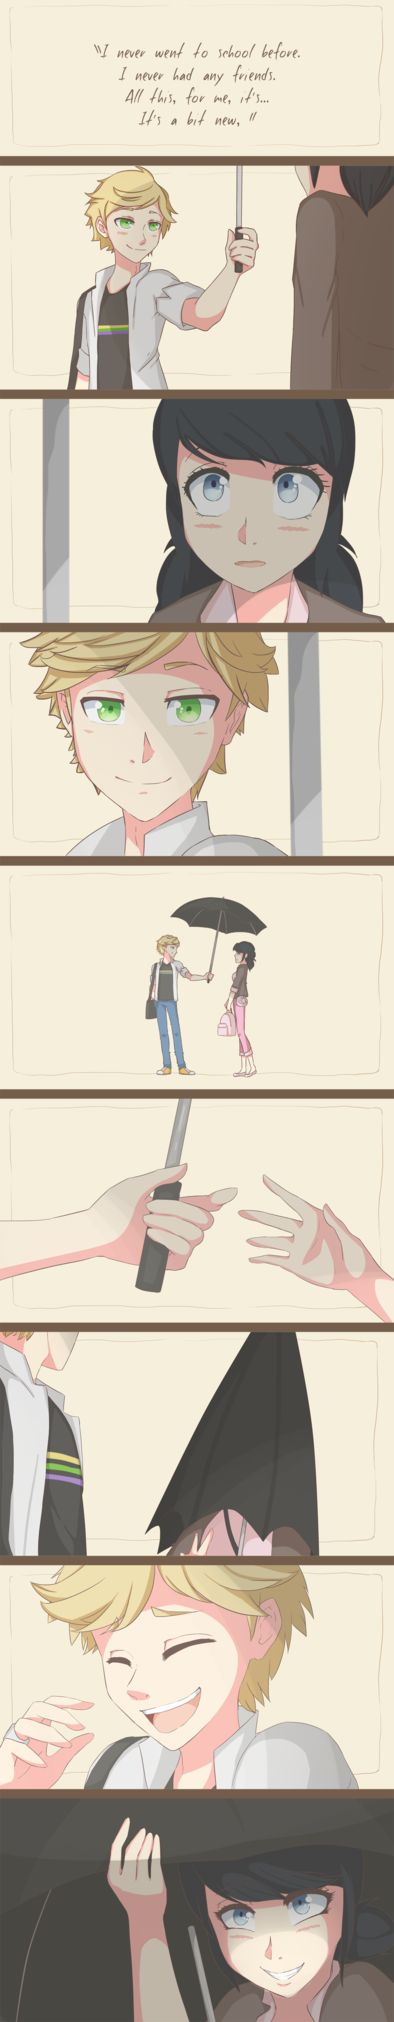 {Miraculous Ladybug} Umbrella Scene by Potates-Chan  This is really cute. I'd be so embarrassed.